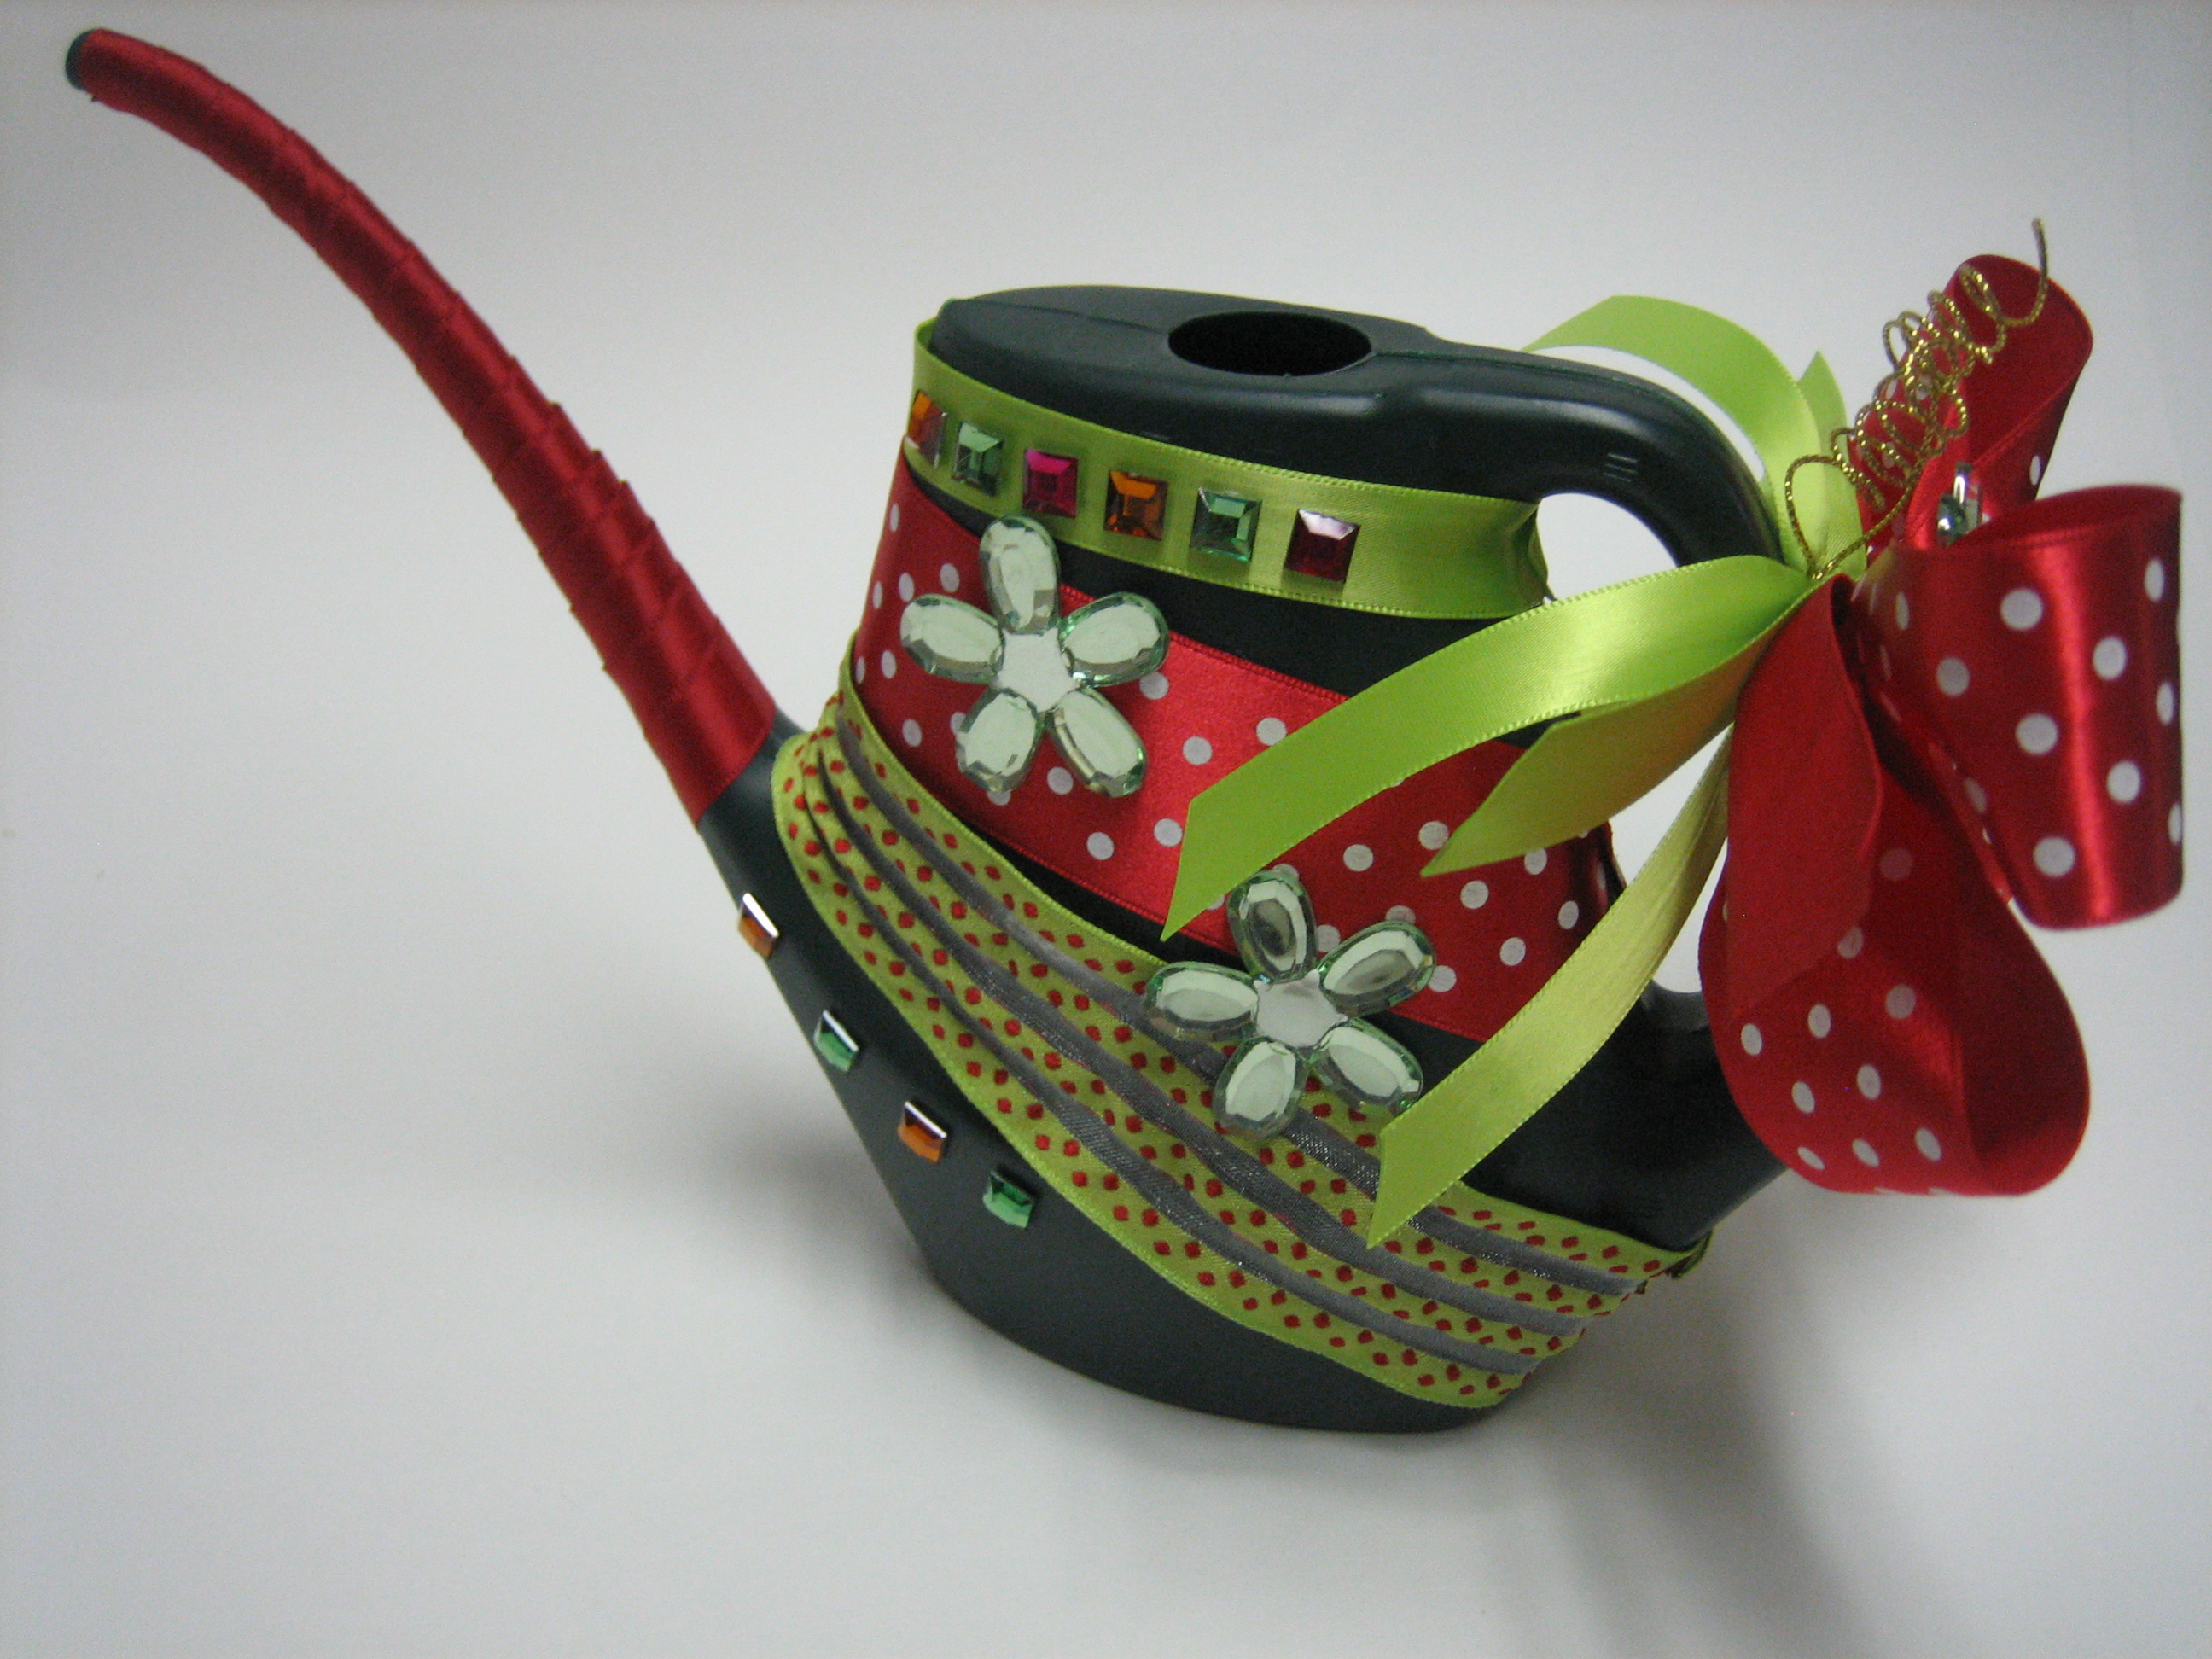 Xmas Tree Watering Can - how to make professional bows